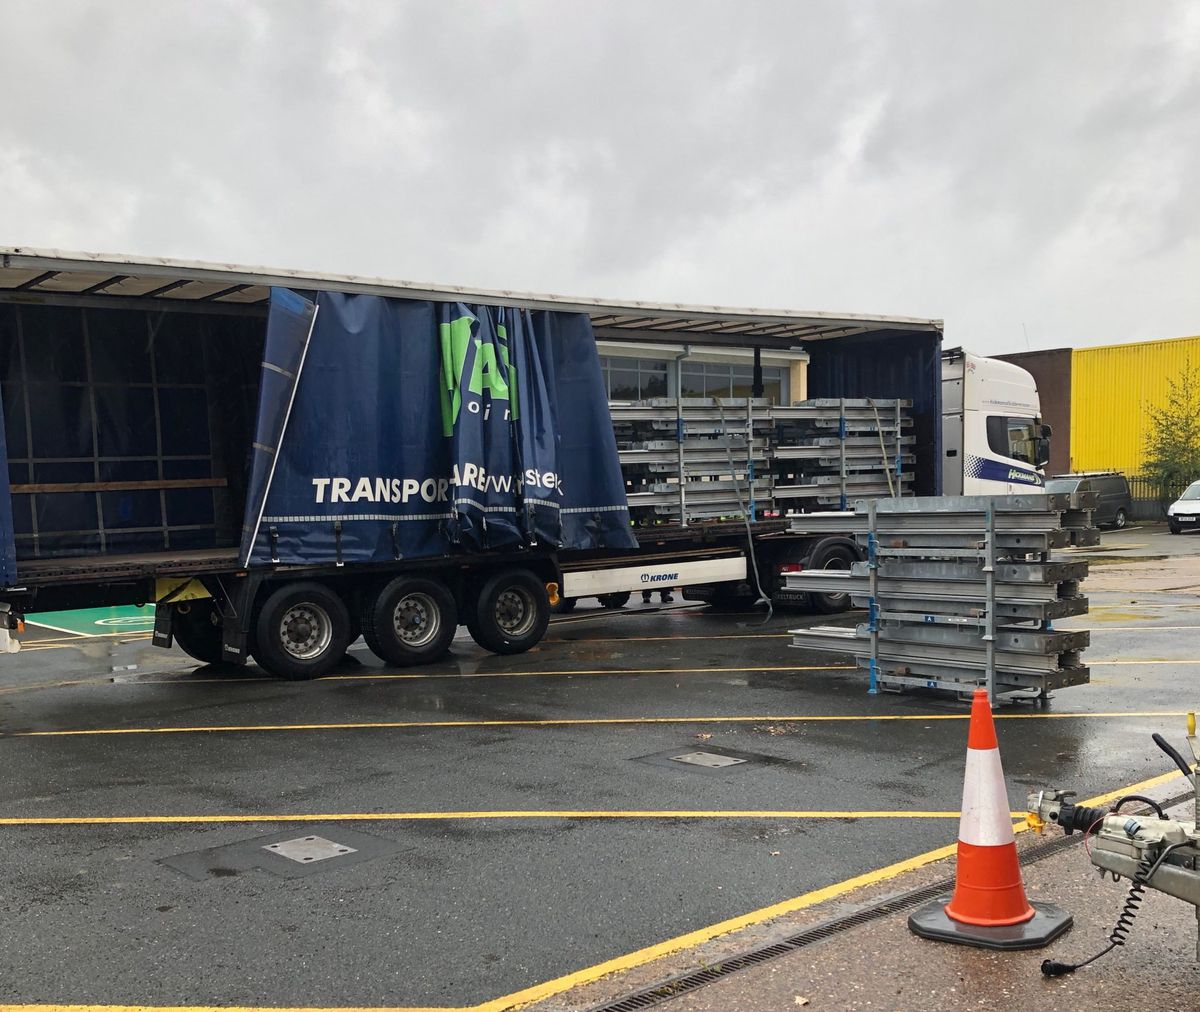 Lorry containing flood barriers